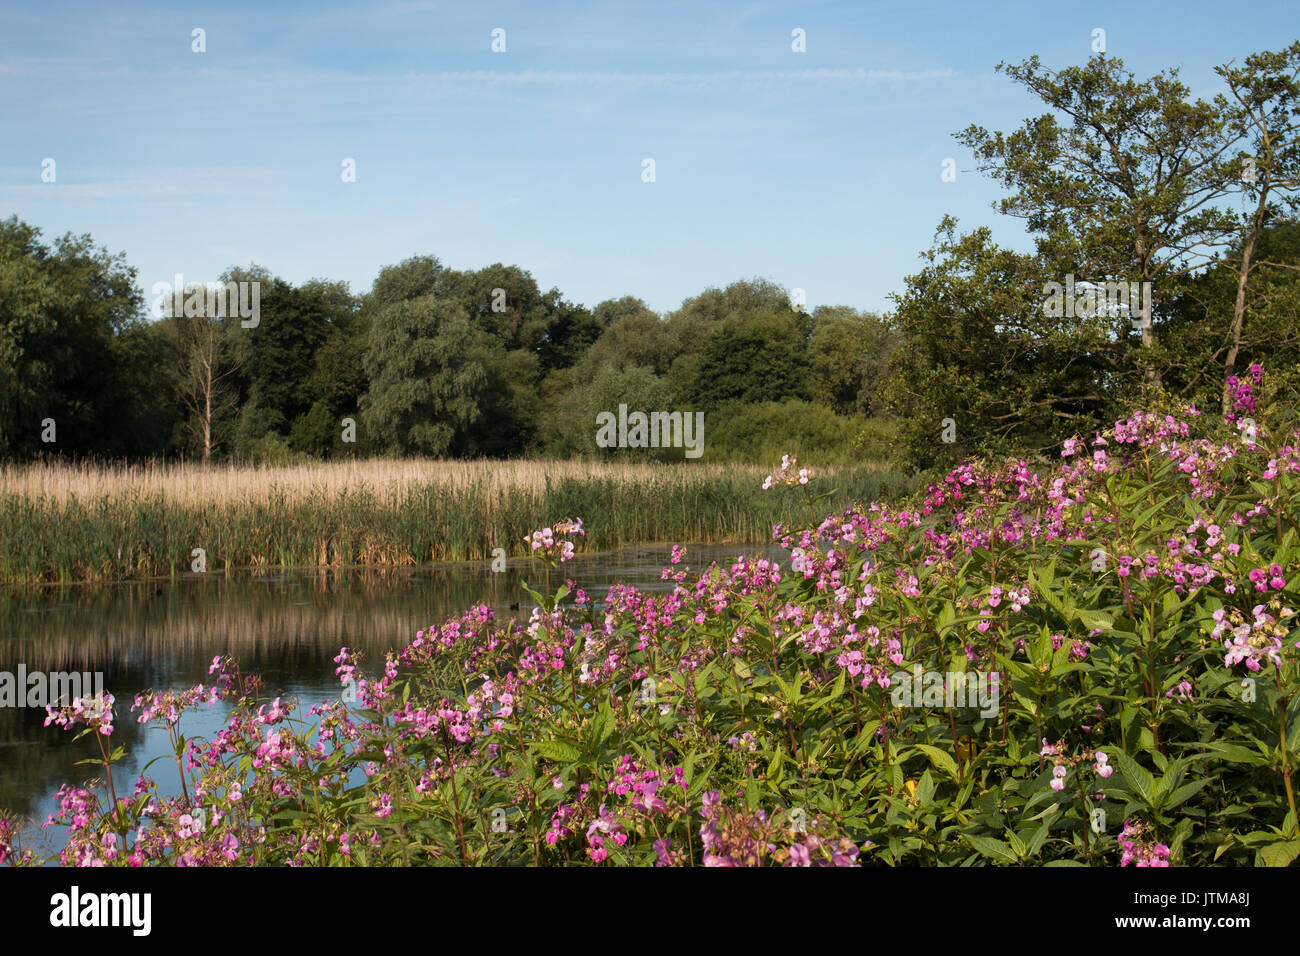 Indian Balsam (Impatiens glandulifera), an invasive species, on the bank of a disused gravel pit at Attenborough Nature Reserve, Nottinghamshire Stock Photo